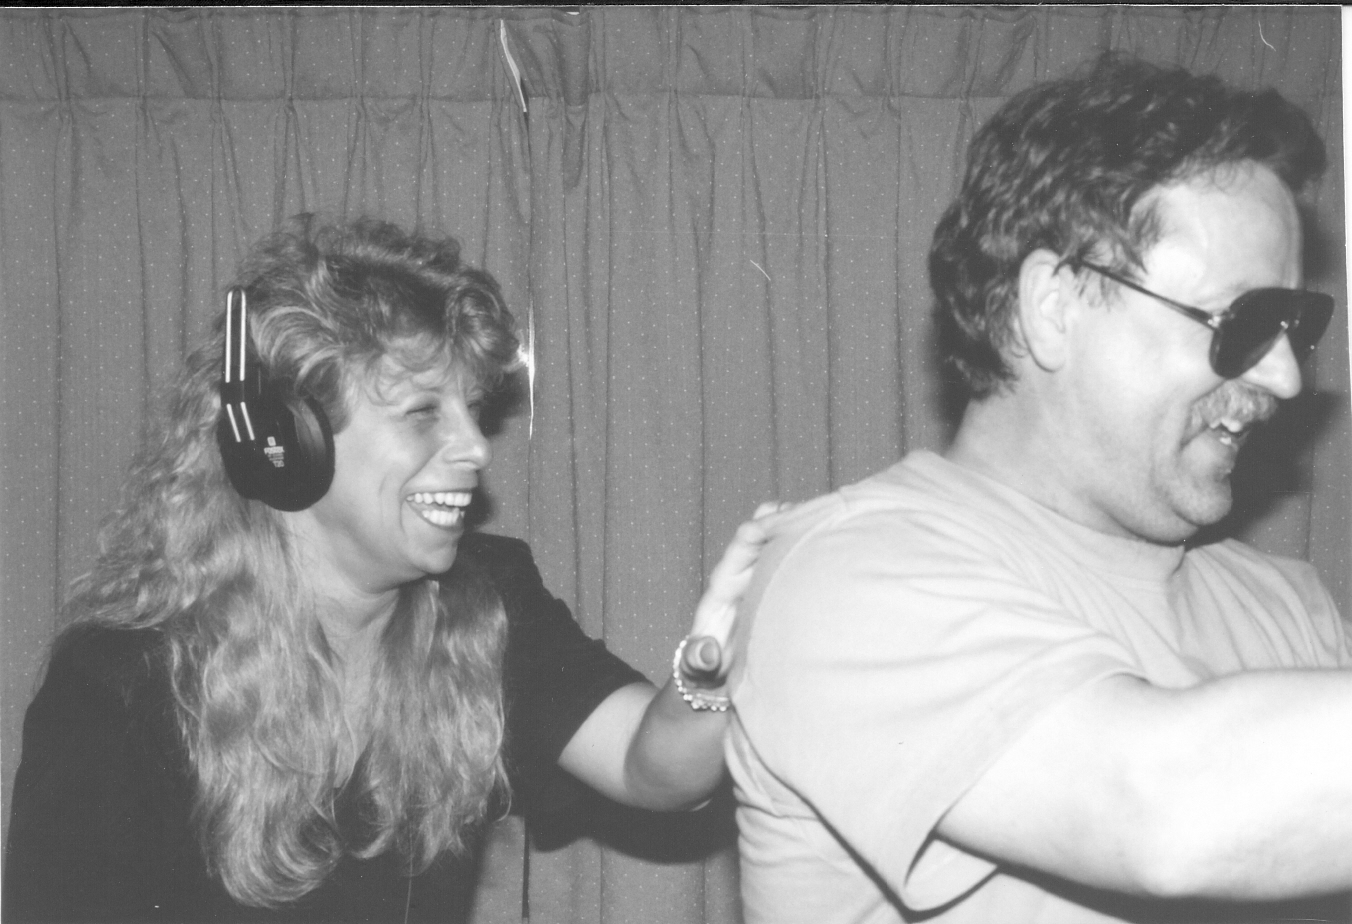 Tania and Gerry at Earworks (1990)